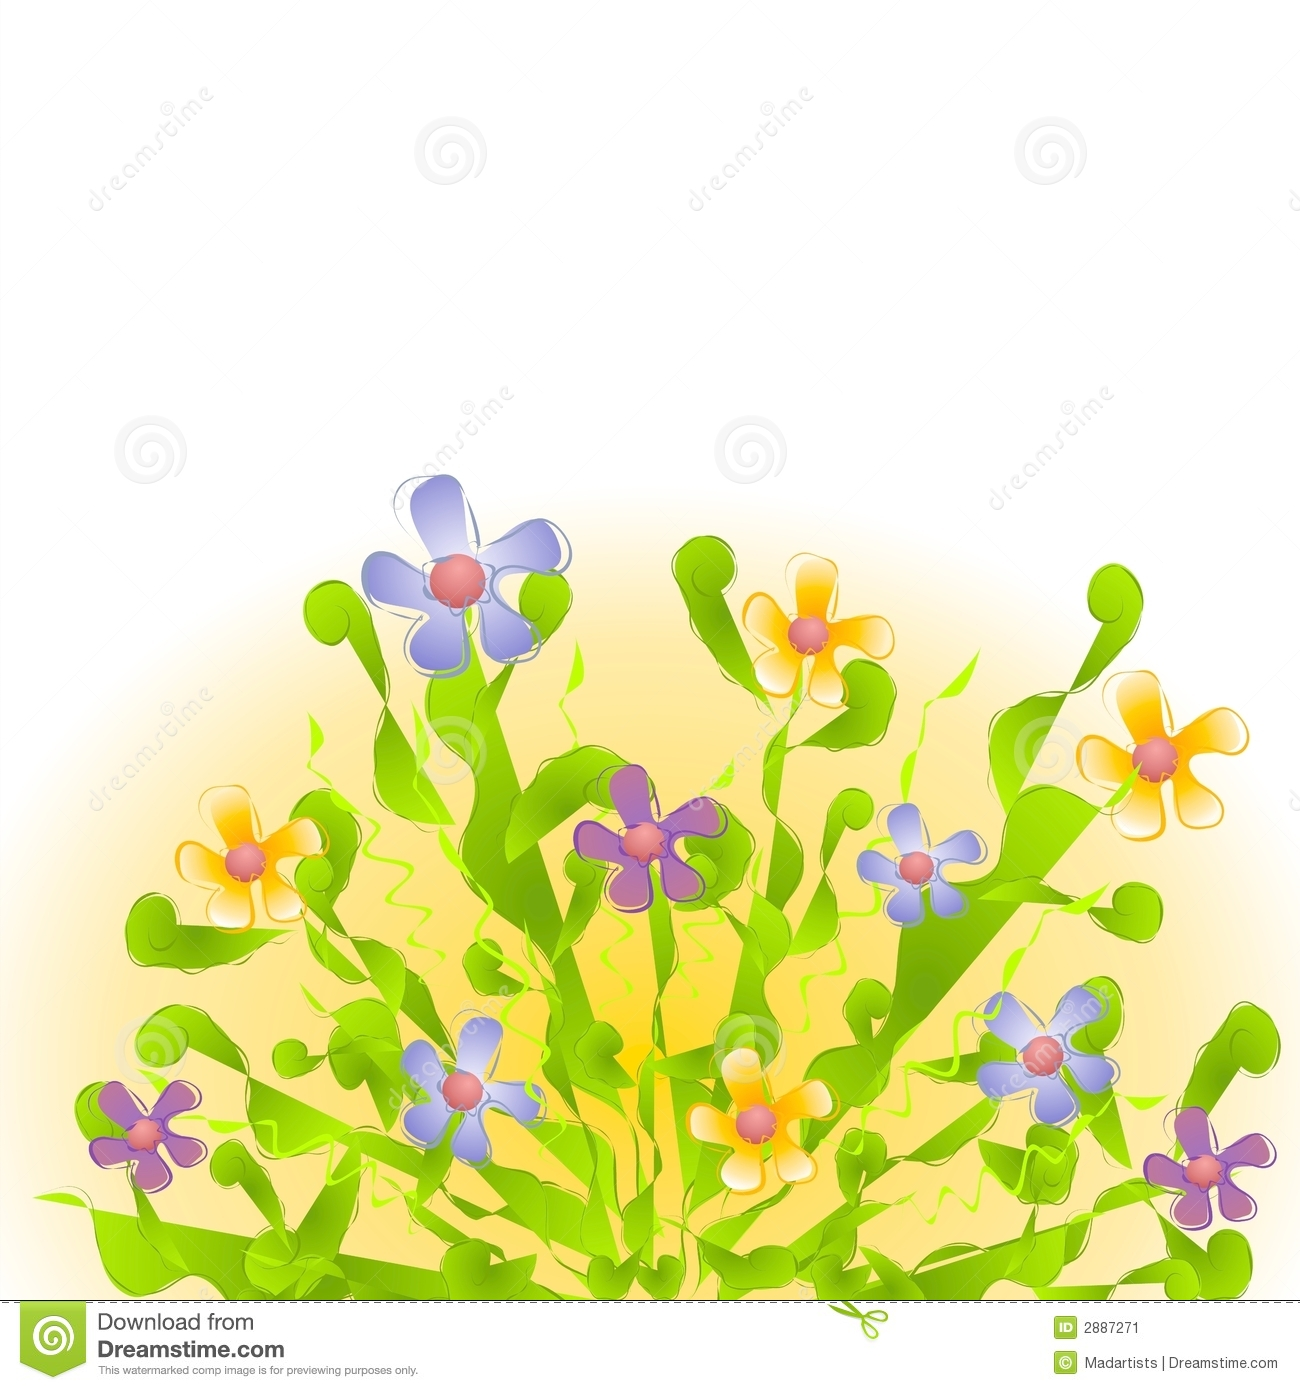 English garden flower clipart.